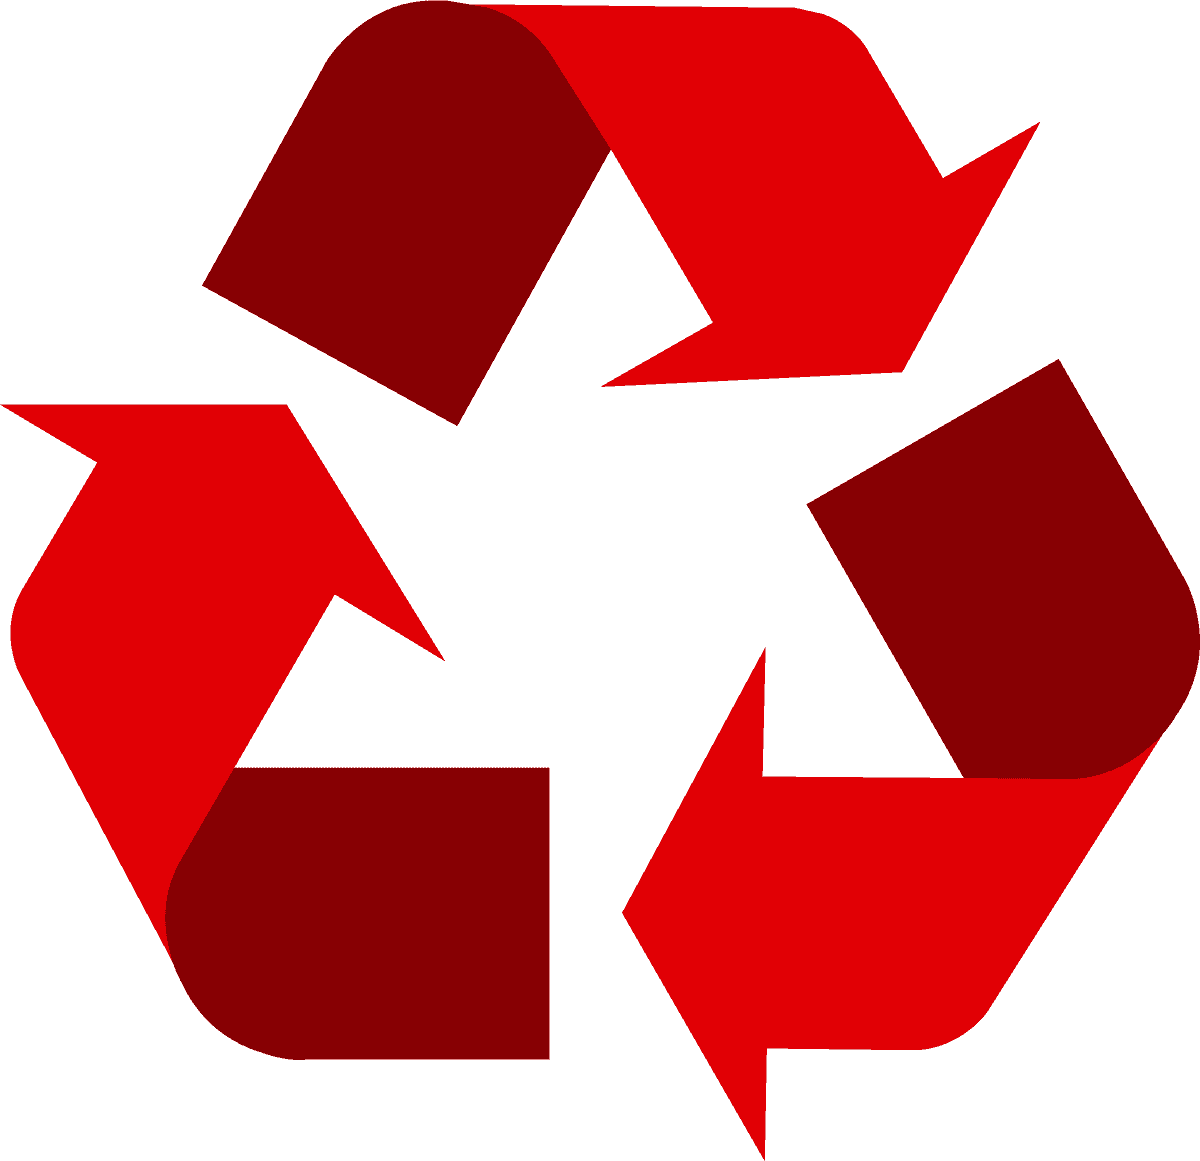 Download Recycling Symbol The Original Recycle Logo